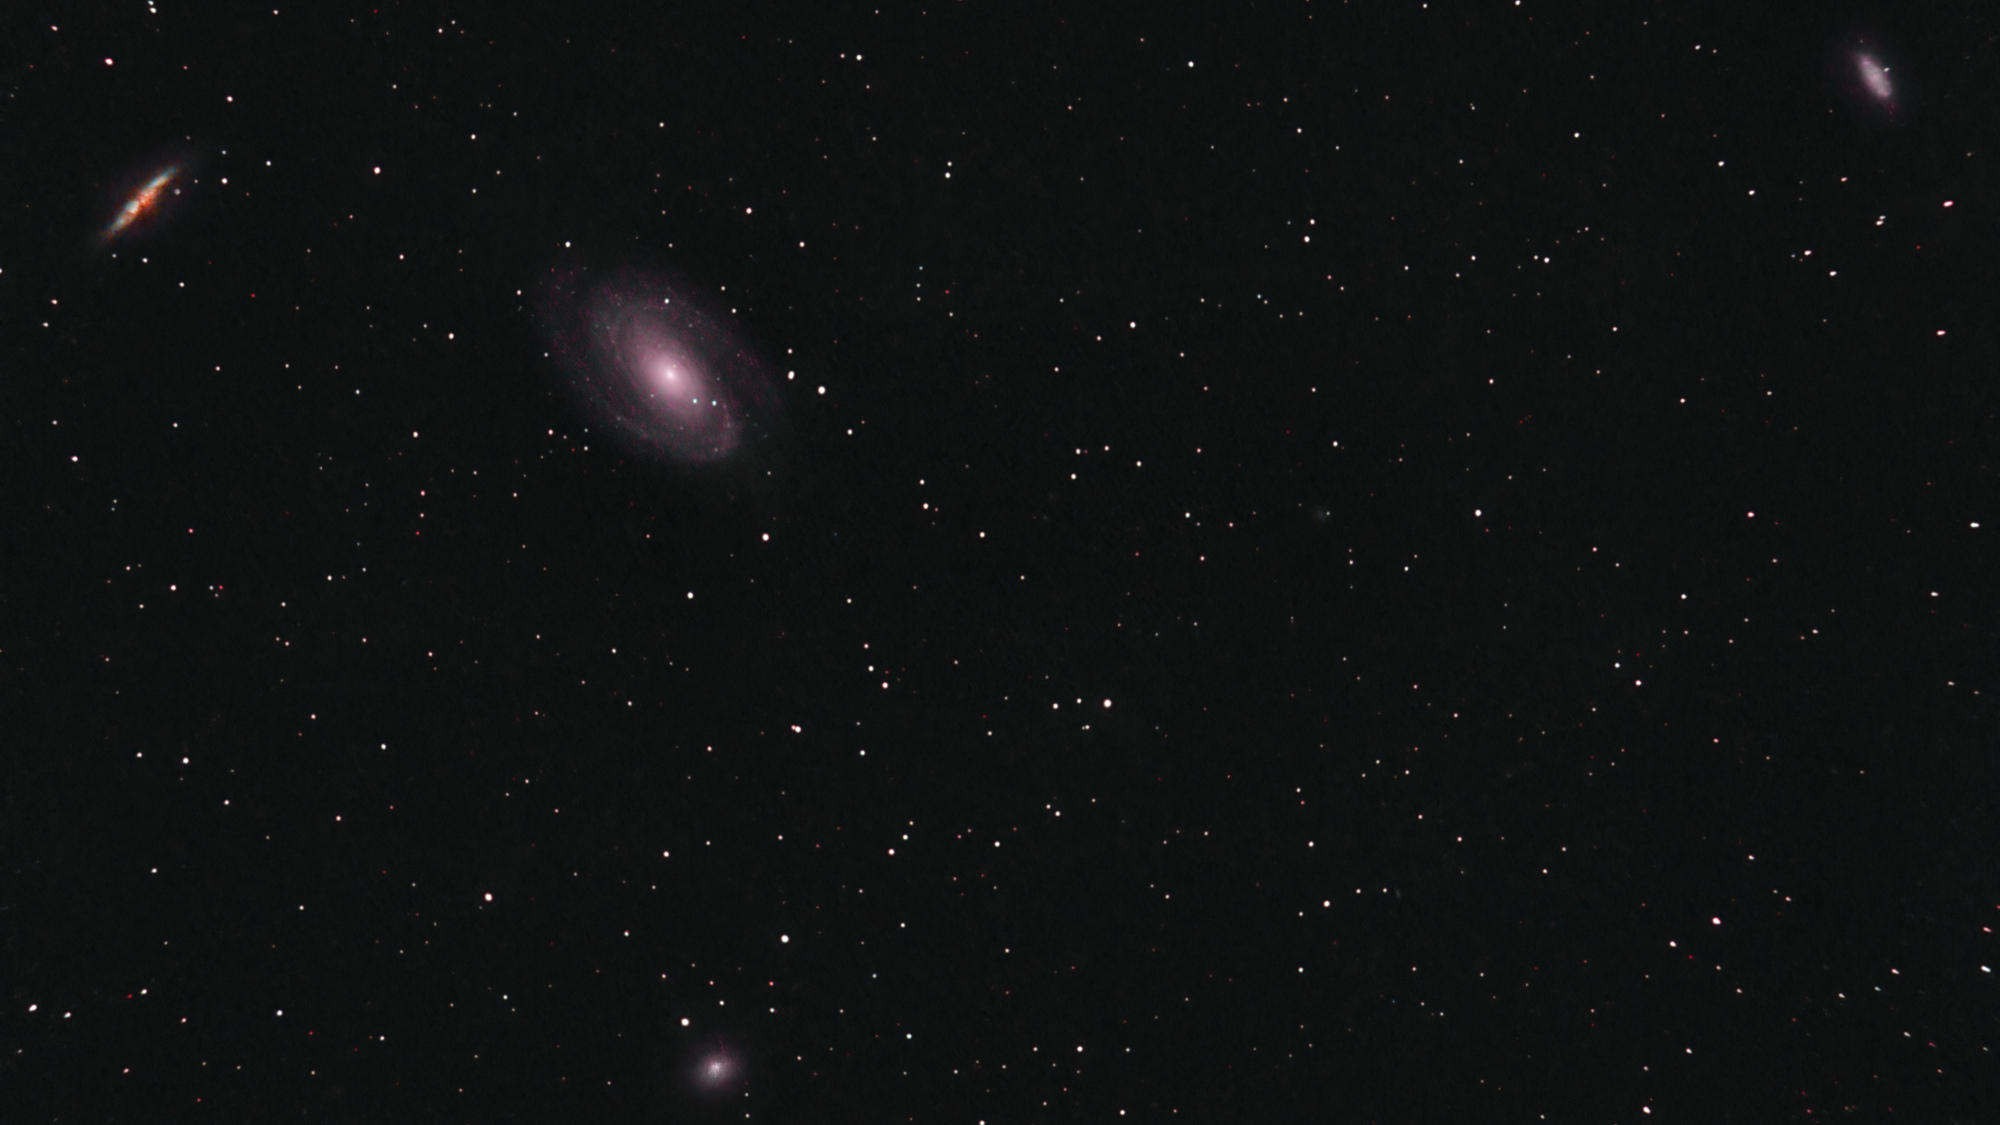 r_pp_Galaxie_Bode_M81_39x300s_ISO800_stacked_proccessed_TIFF_for_PS_-_V3.5.jpg